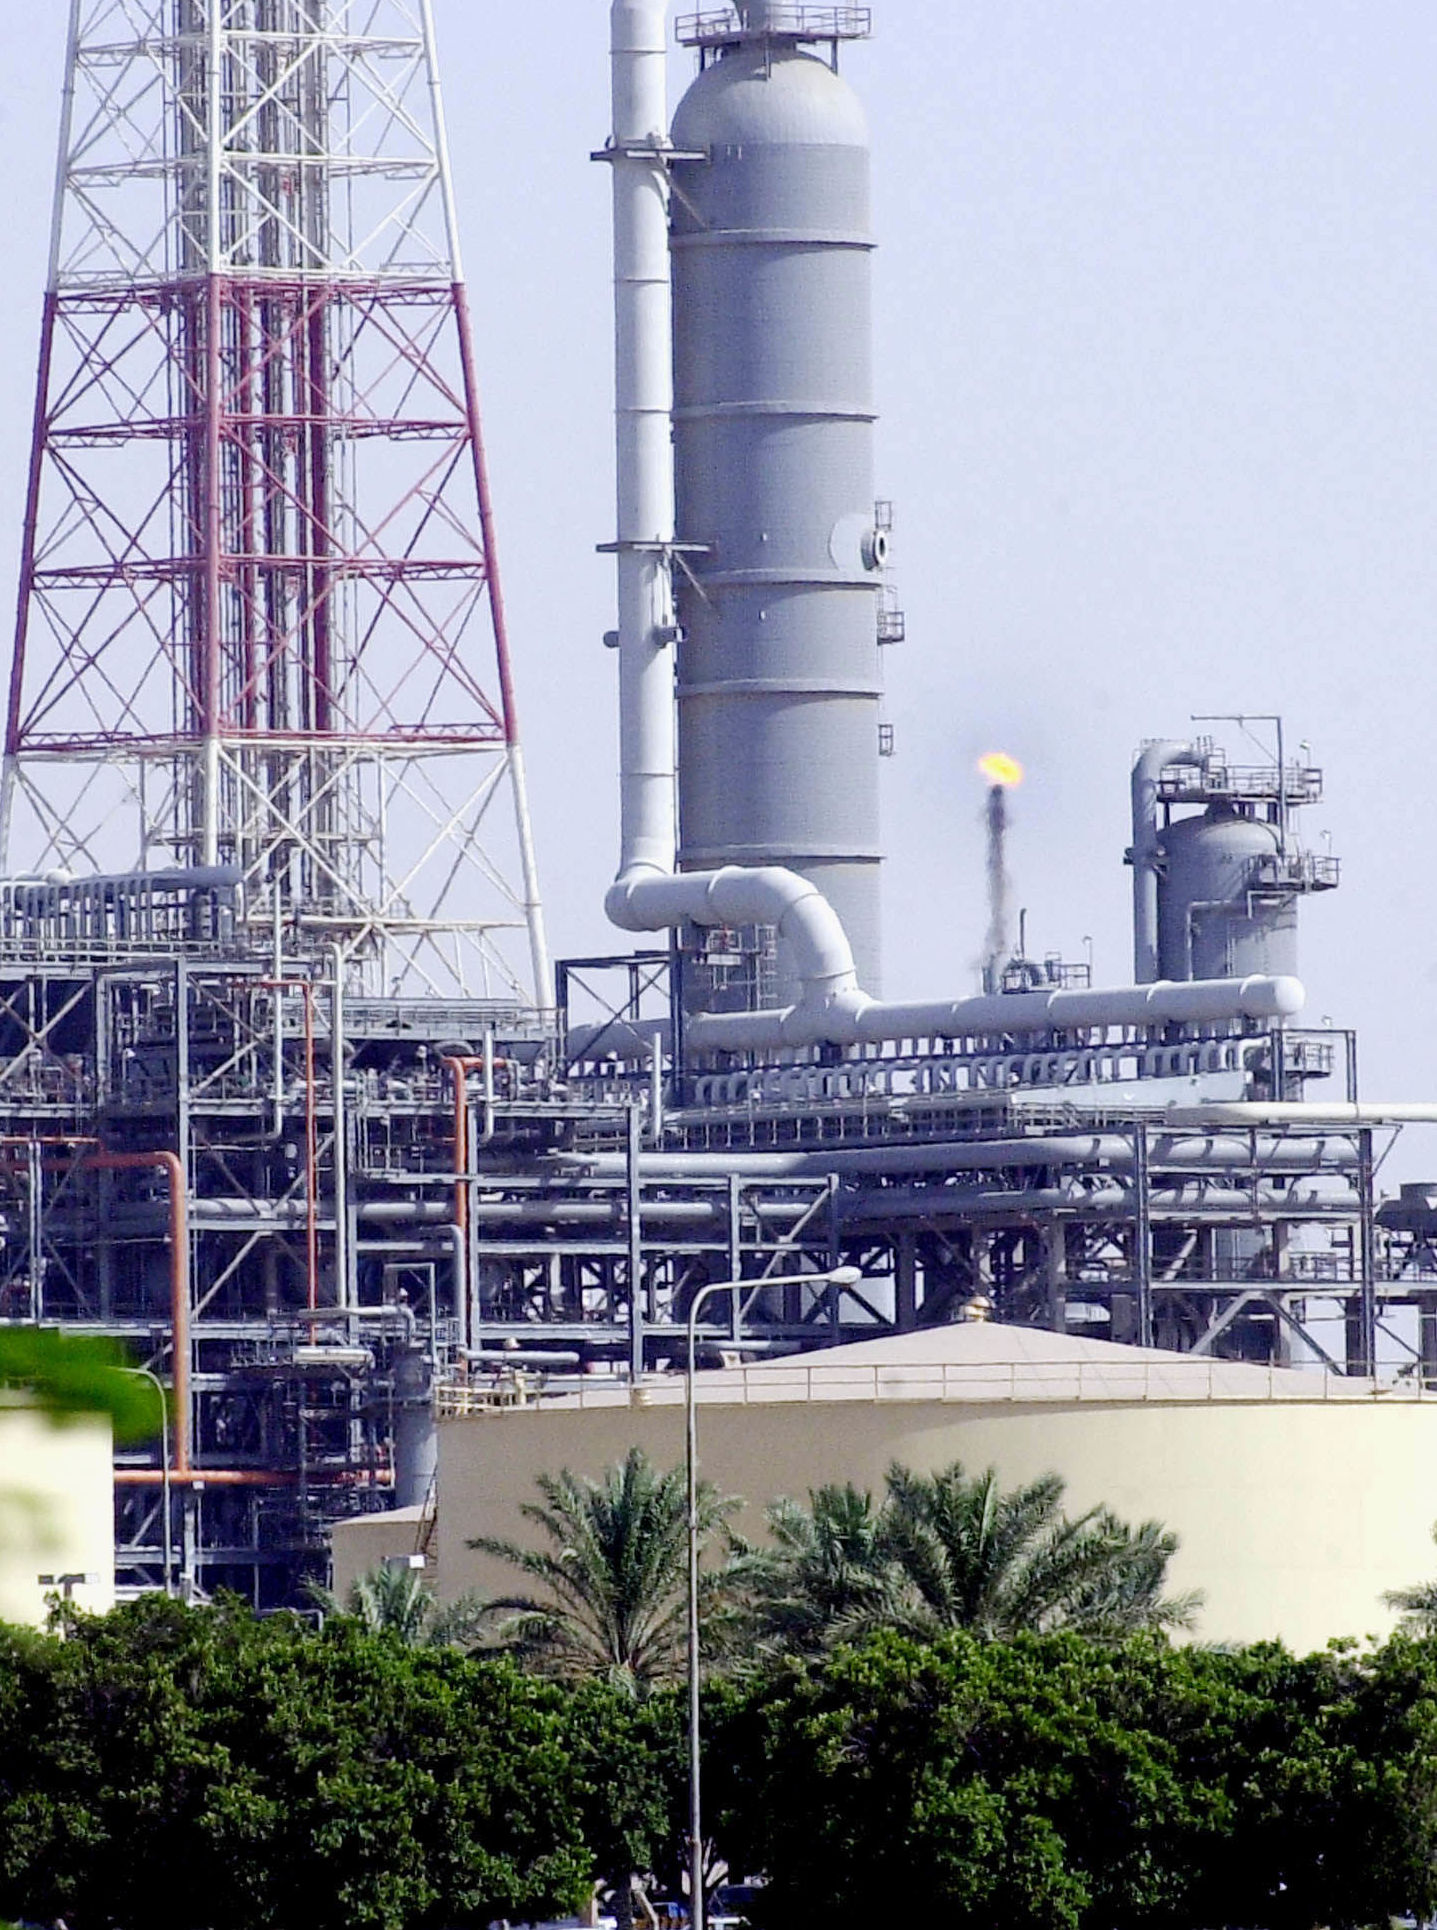 A Saudi Aramco Shell oil refinery in Jubail, Saudi Arabia, is seen in this Tuesday, June 1, 2004 file photo